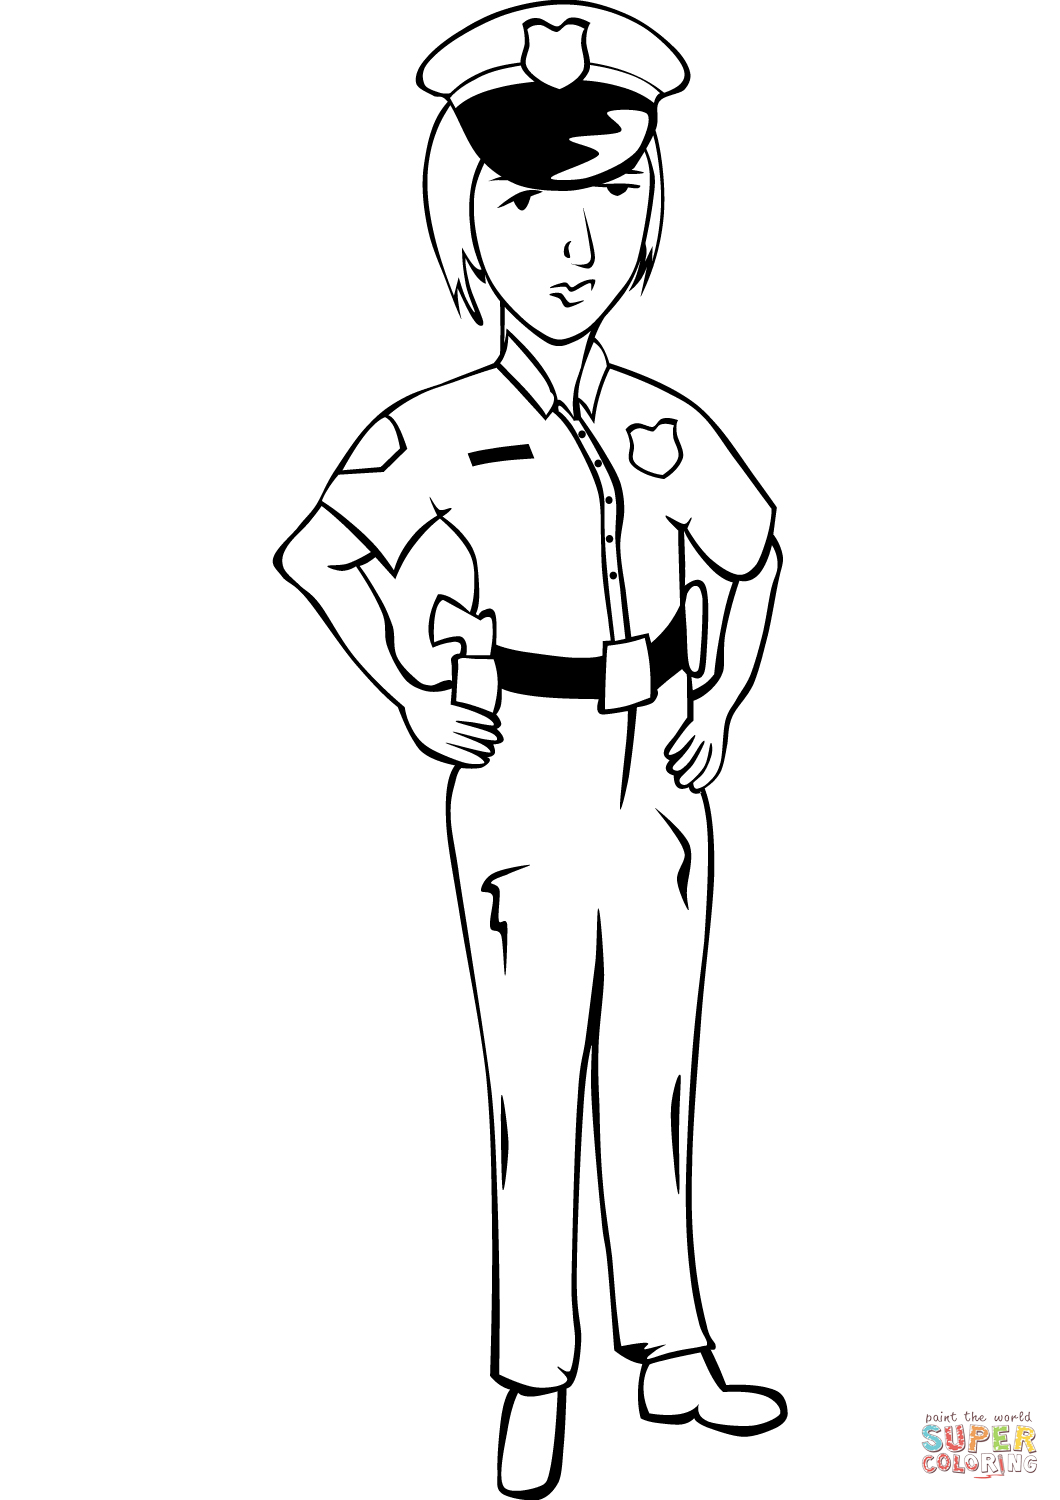 Woman Police Officer Coloring Page